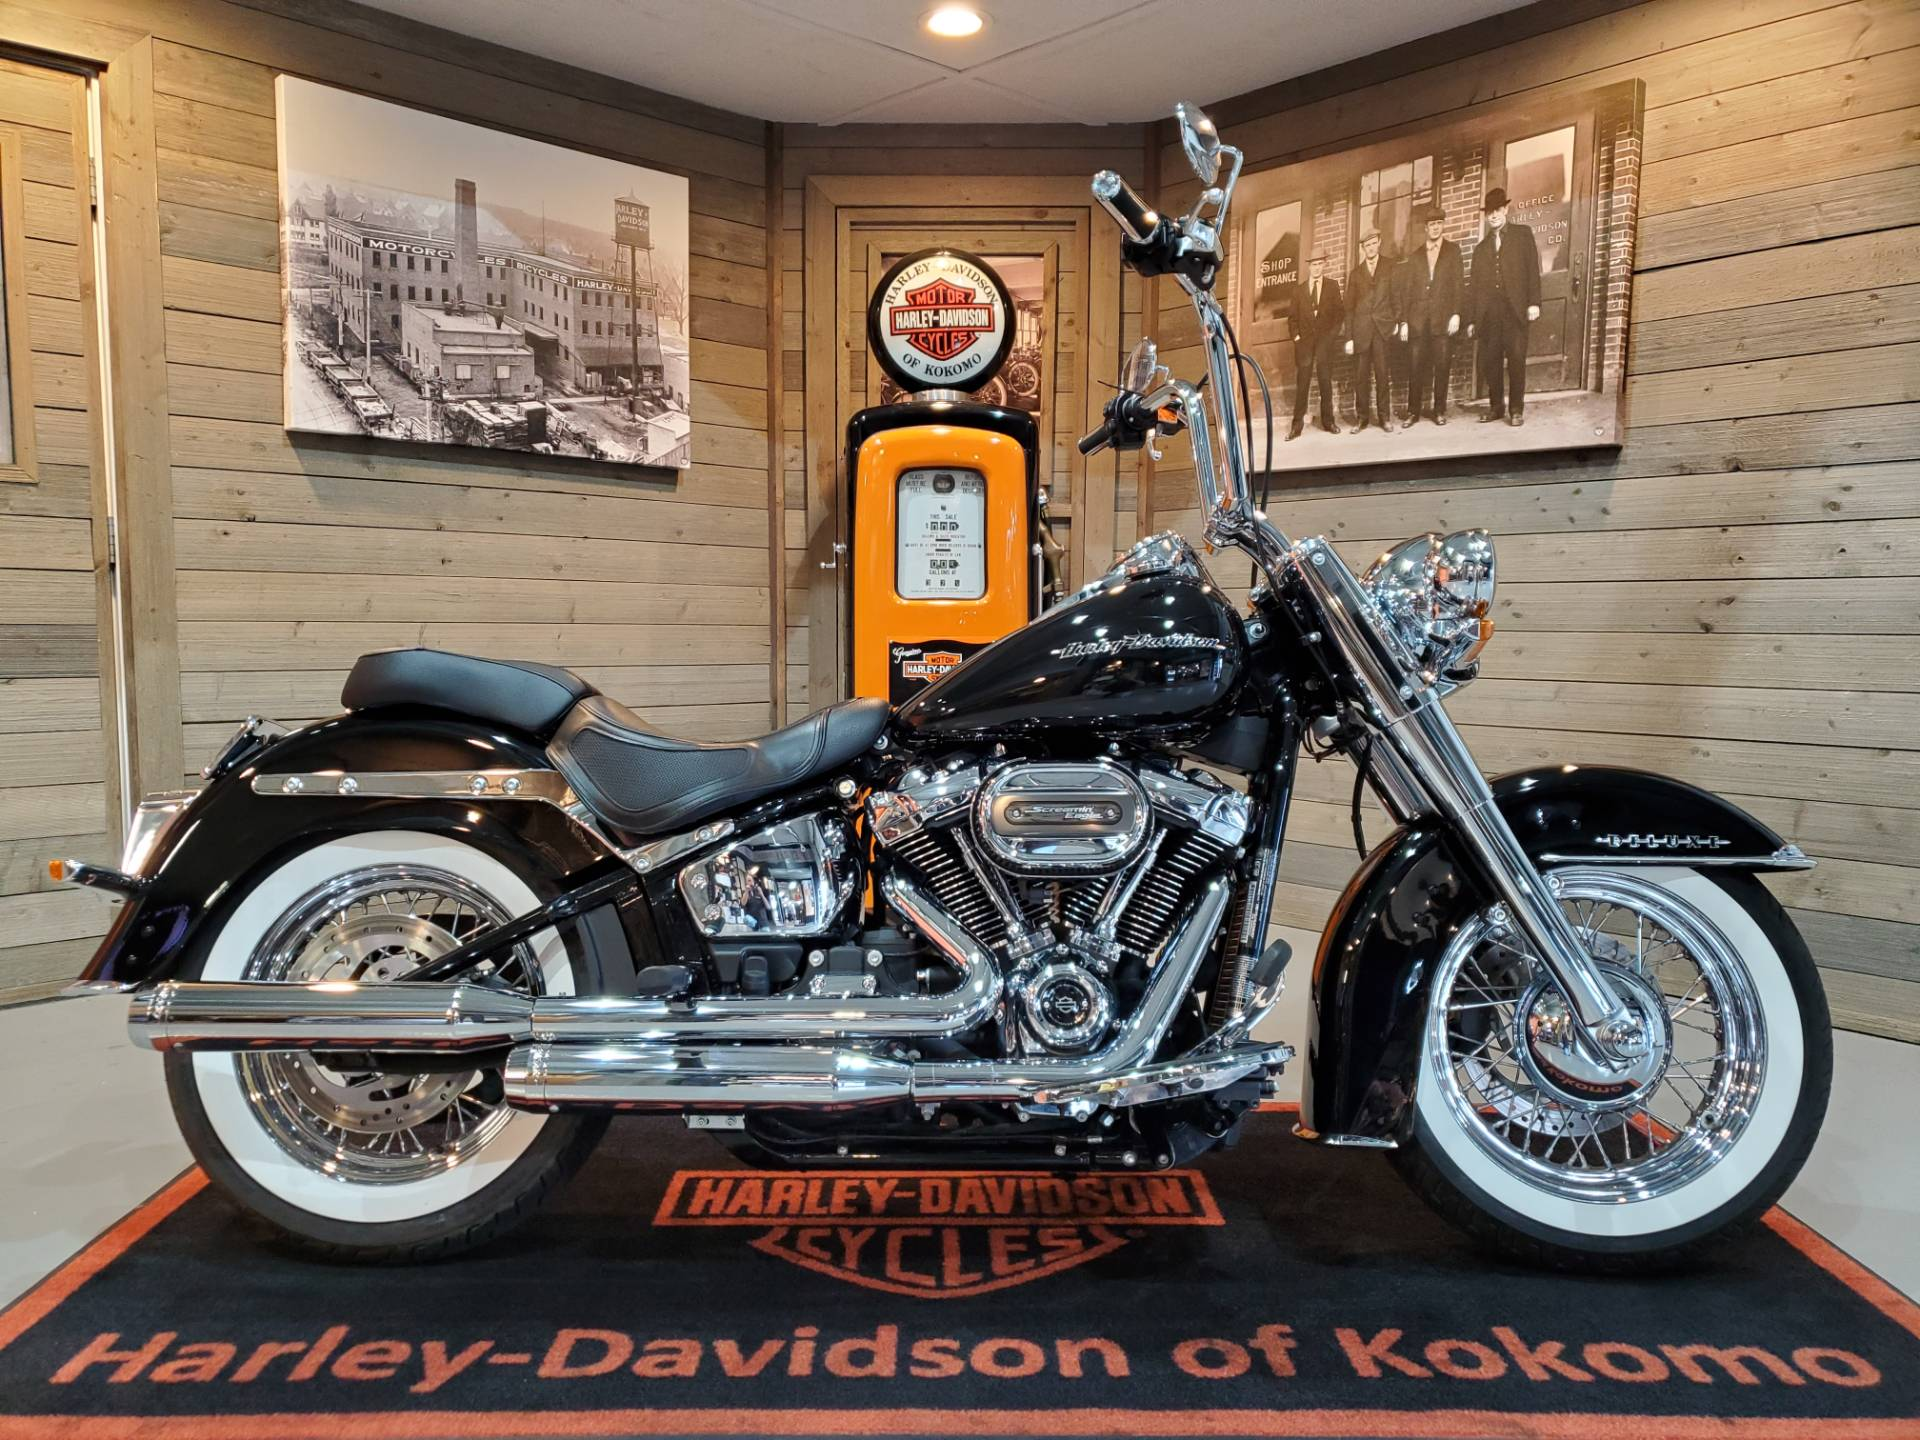 2018 Harley-Davidson Softail® Deluxe 107 in Kokomo, Indiana - Photo 1